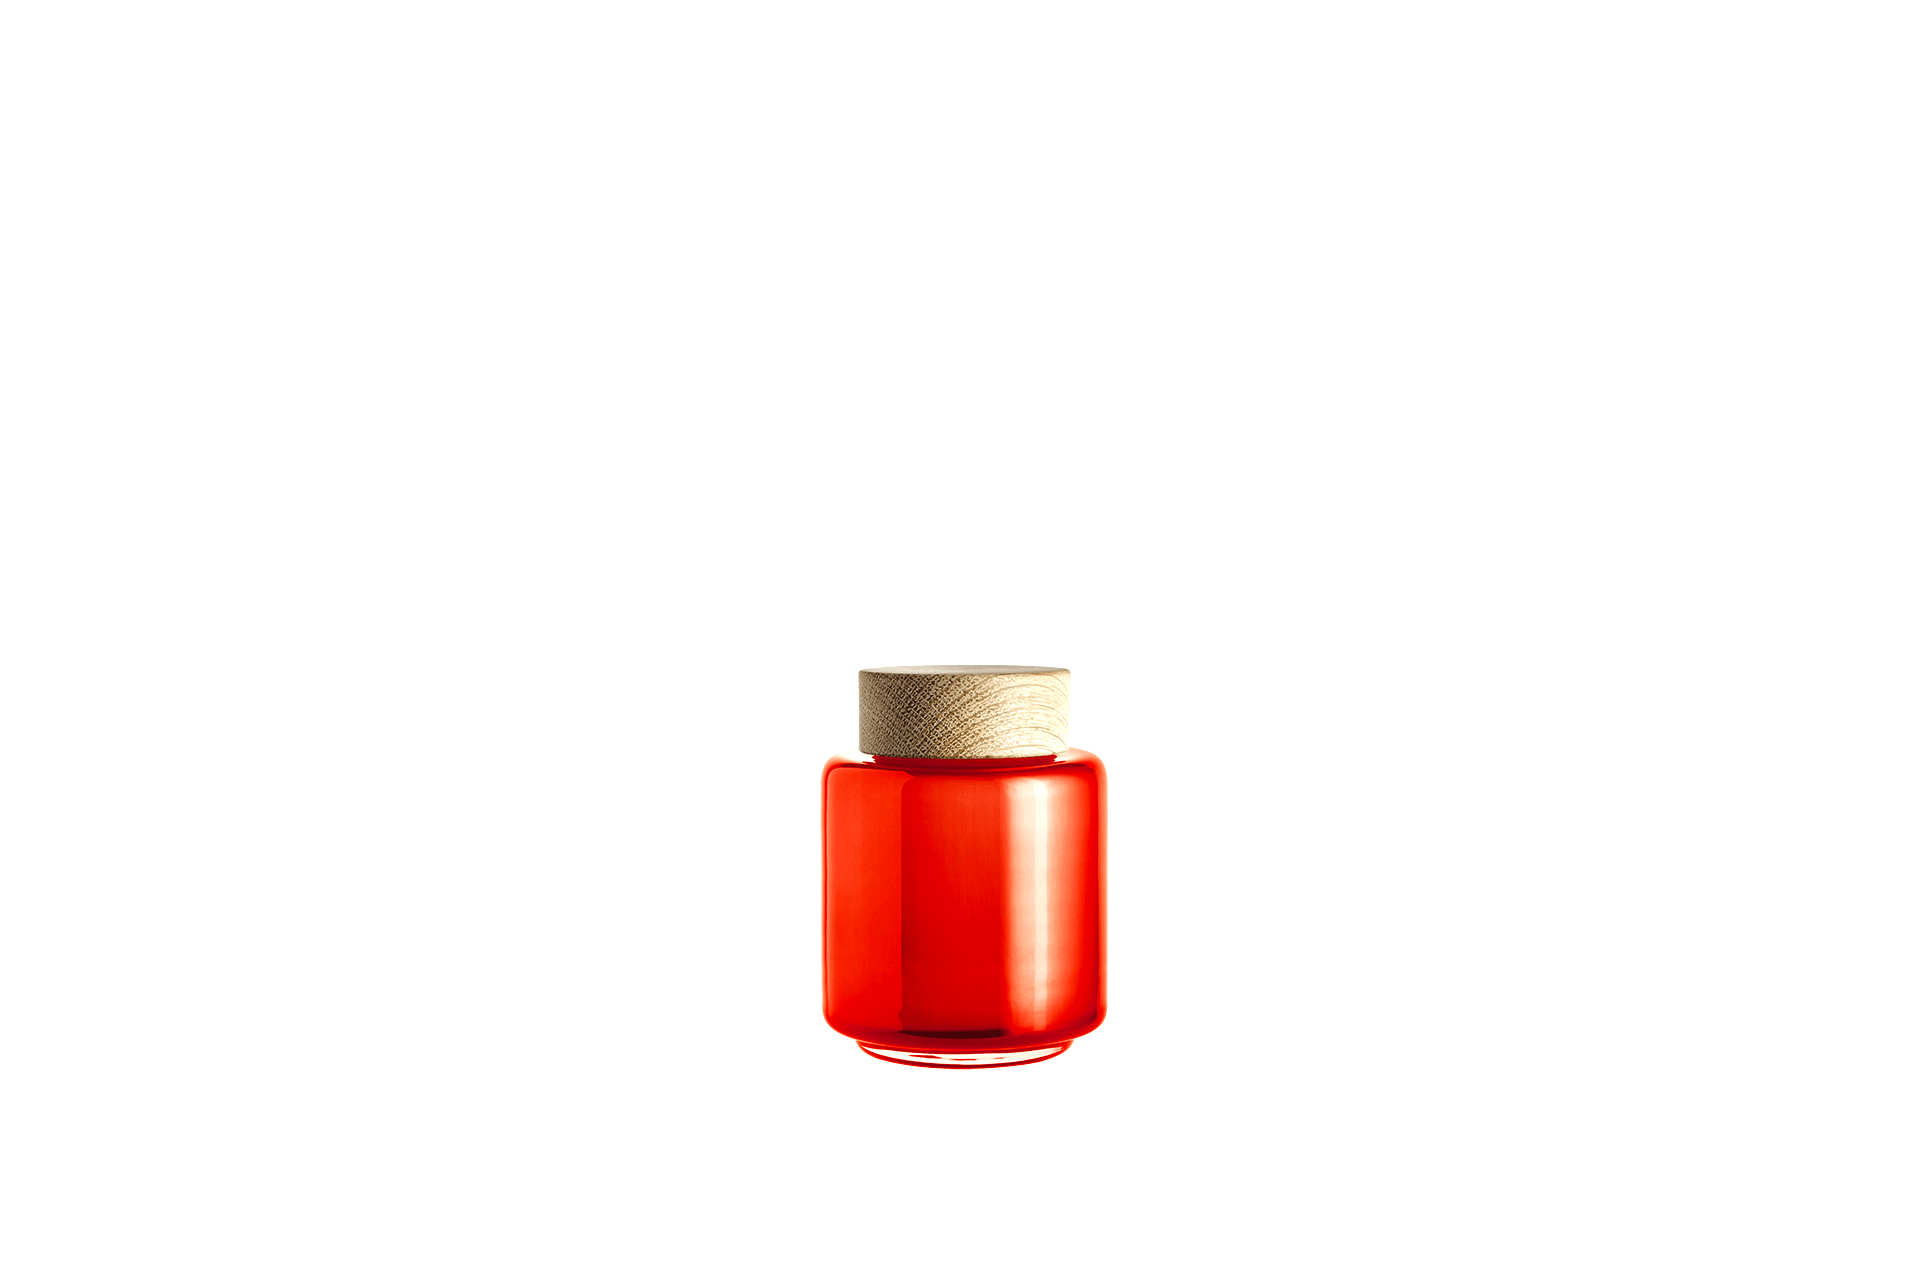 Bocal verre soufflé orangé 0.35L PALET JAR by Holmegaard-PARIDEO design durable